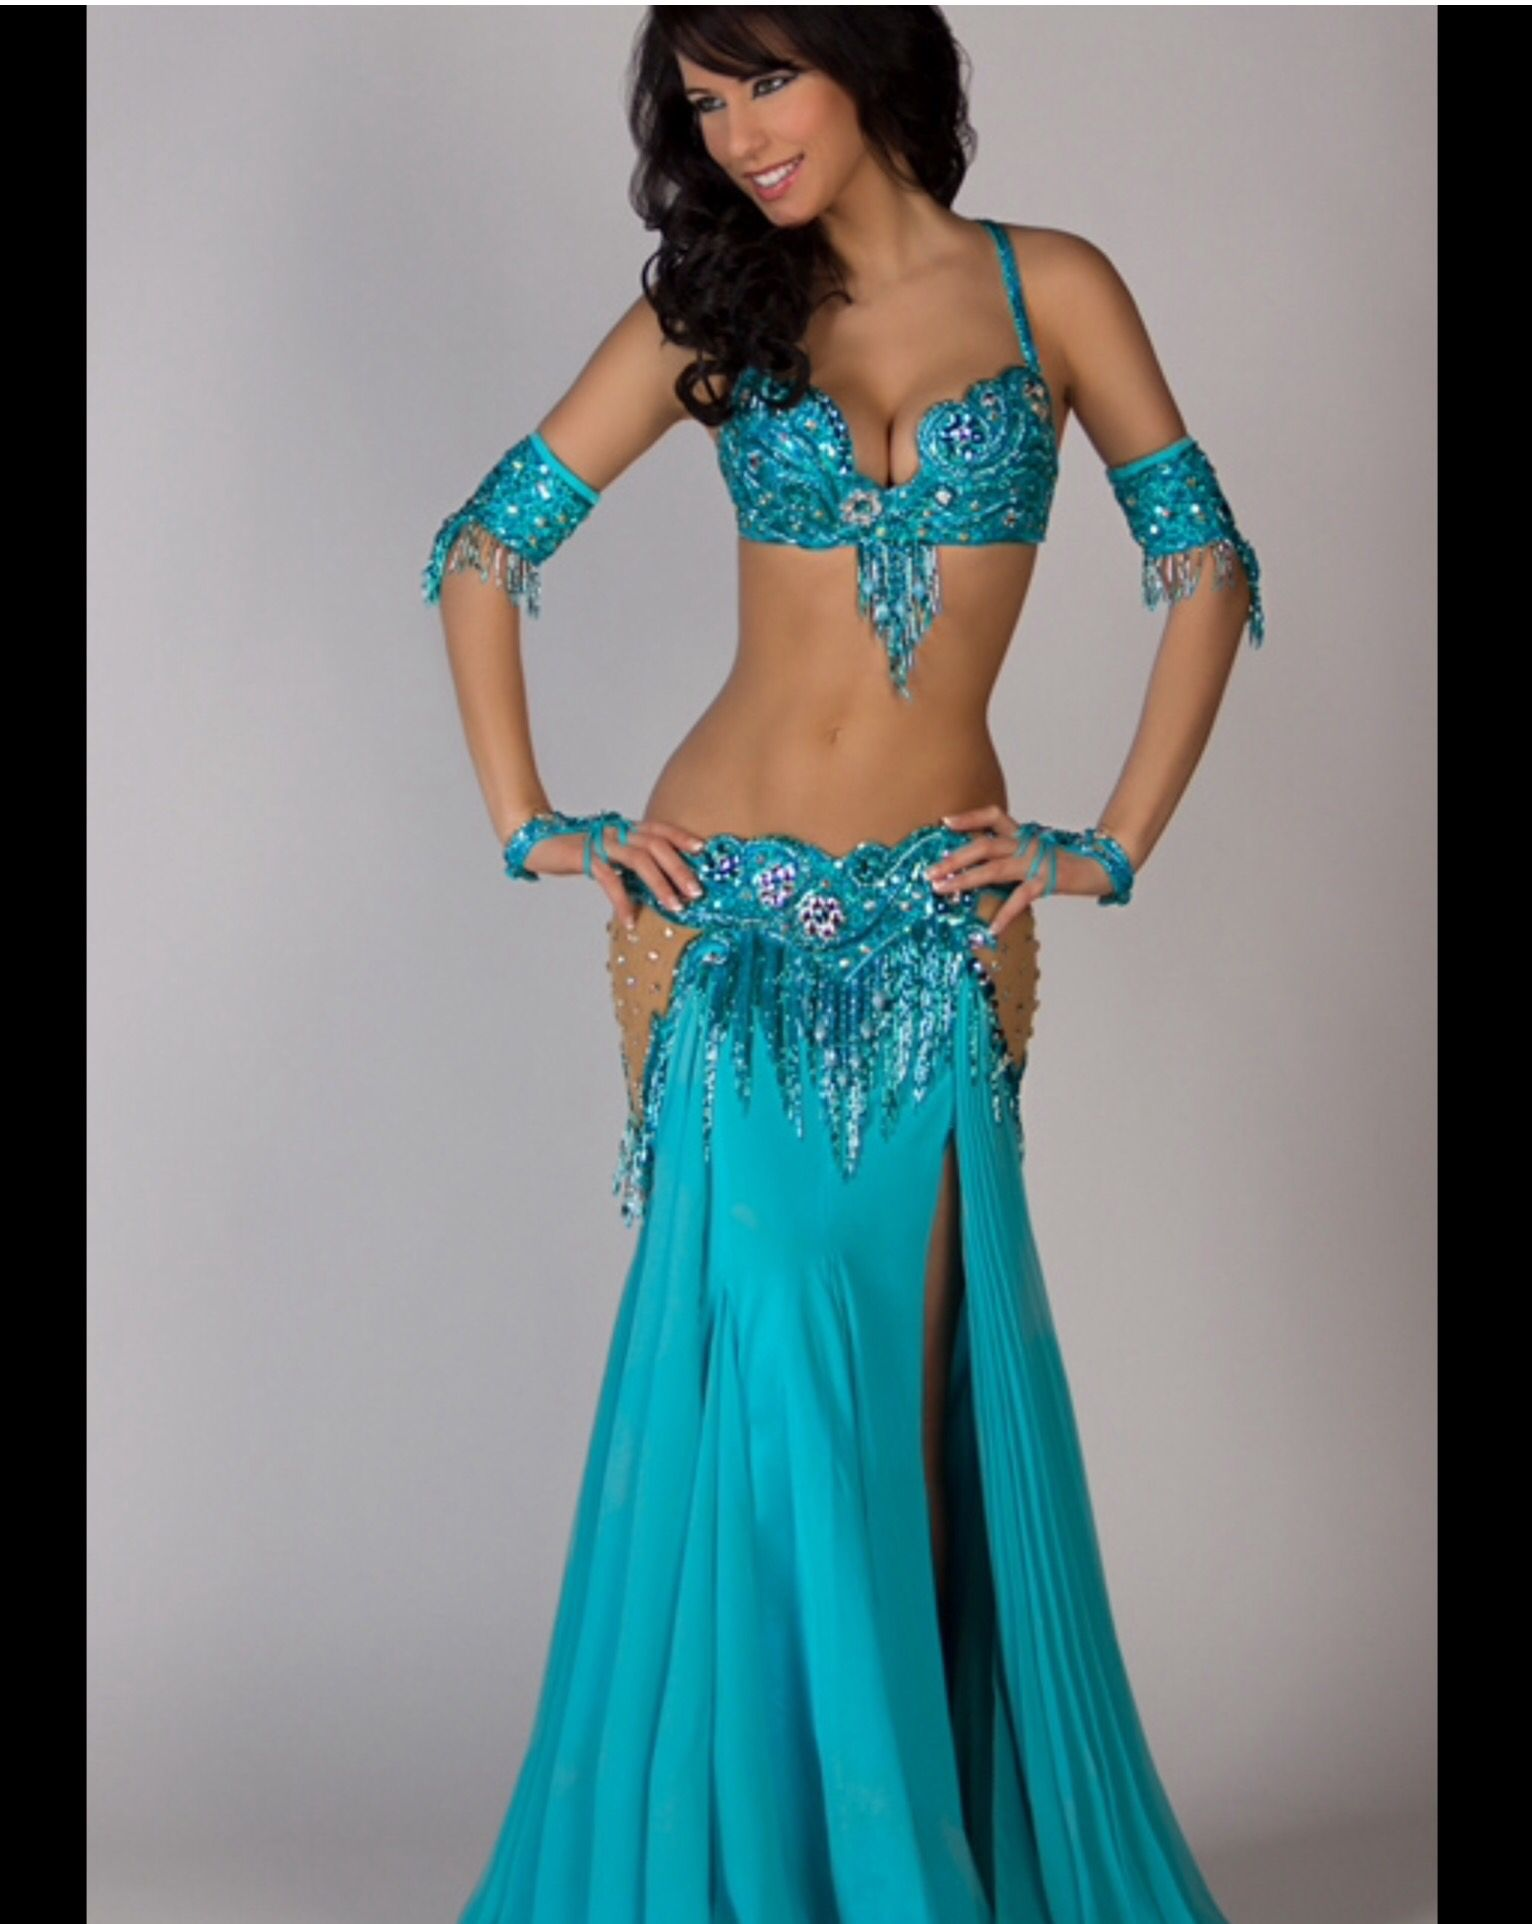 Belly dancing outfit | Belly Dancing outfits | Pinterest | Dancing ...